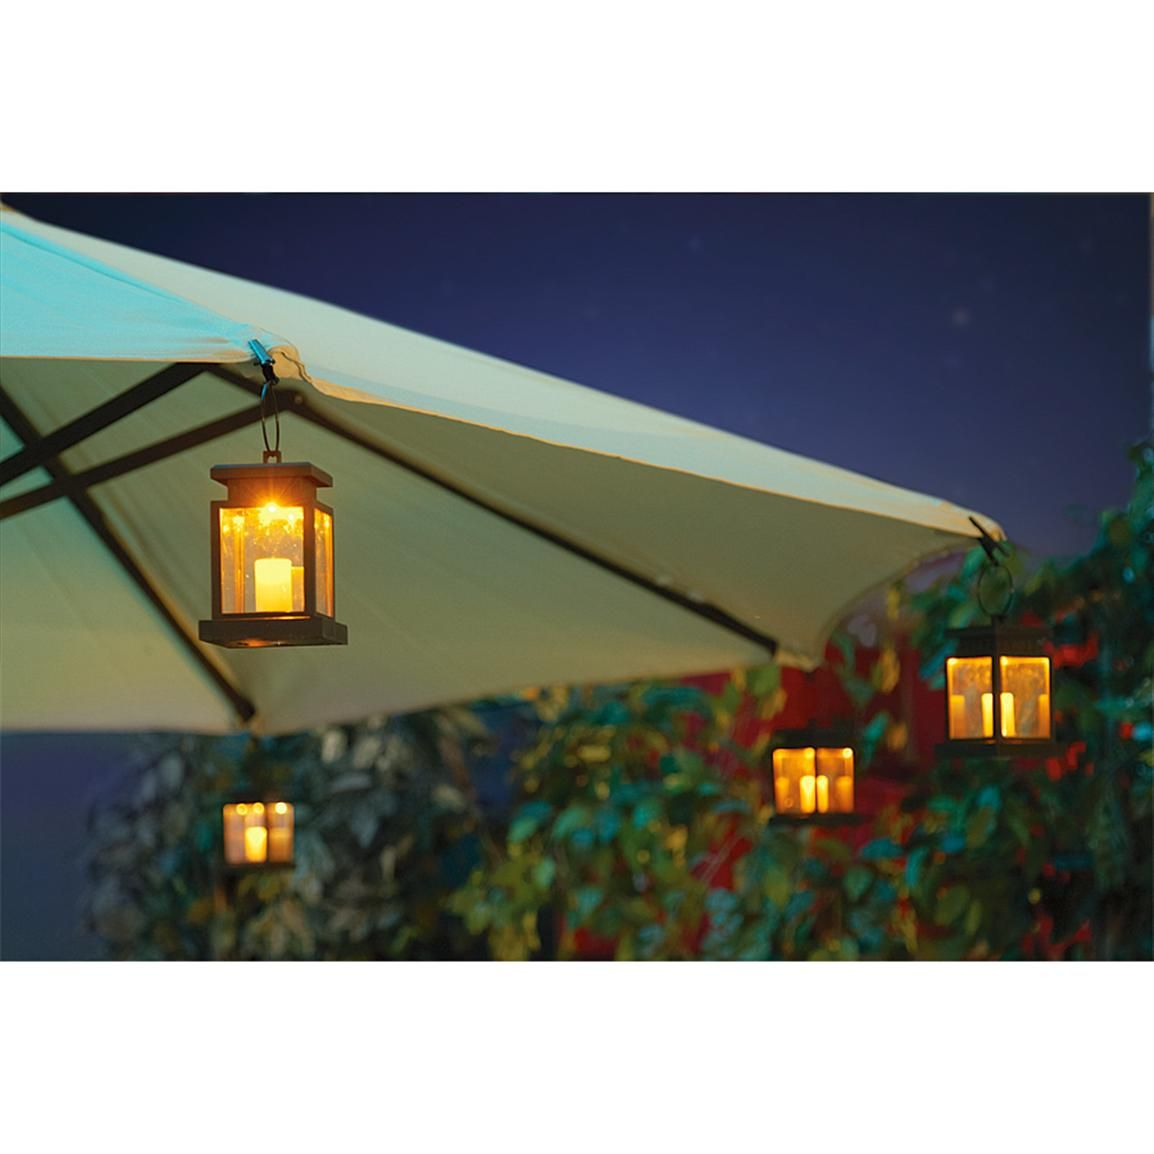 4 pk of solar patio umbrella clip lights patio garden solar patio umbrella clip lights 219378 solar outdoor lighting at sportsmans guide mozeypictures Gallery